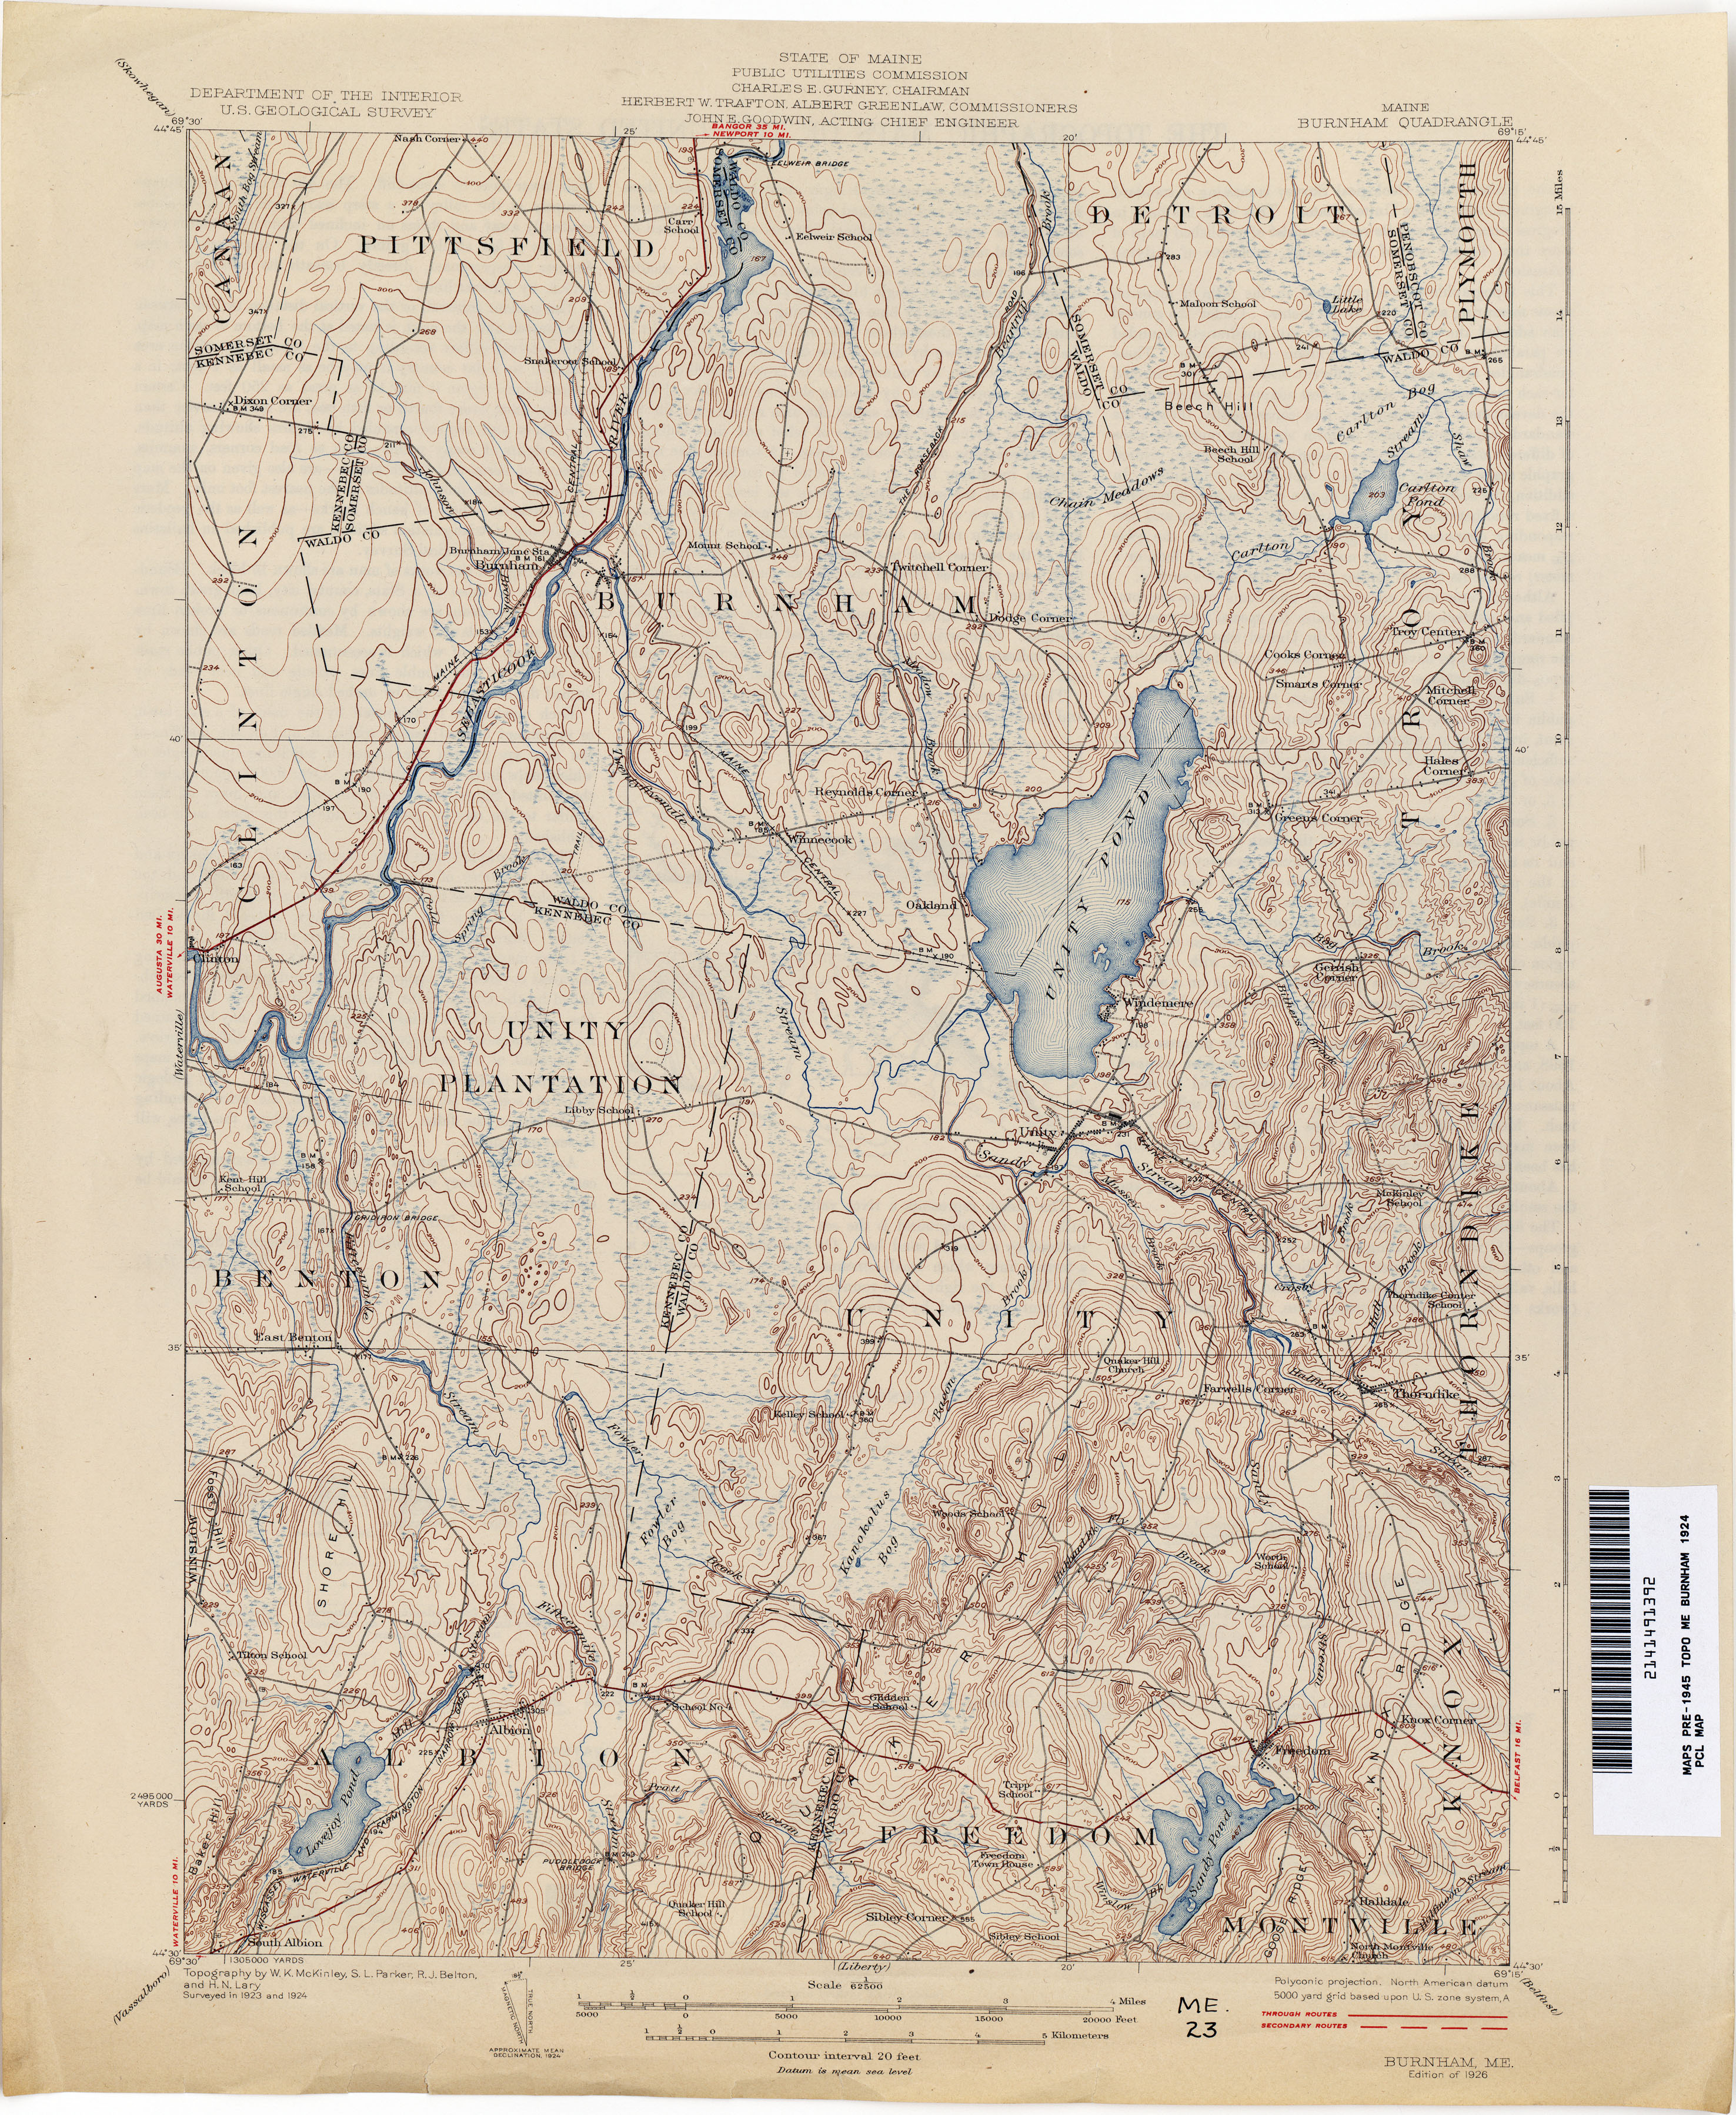 Maine Map Images.Maine Historical Topographic Maps Perry Castaneda Map Collection